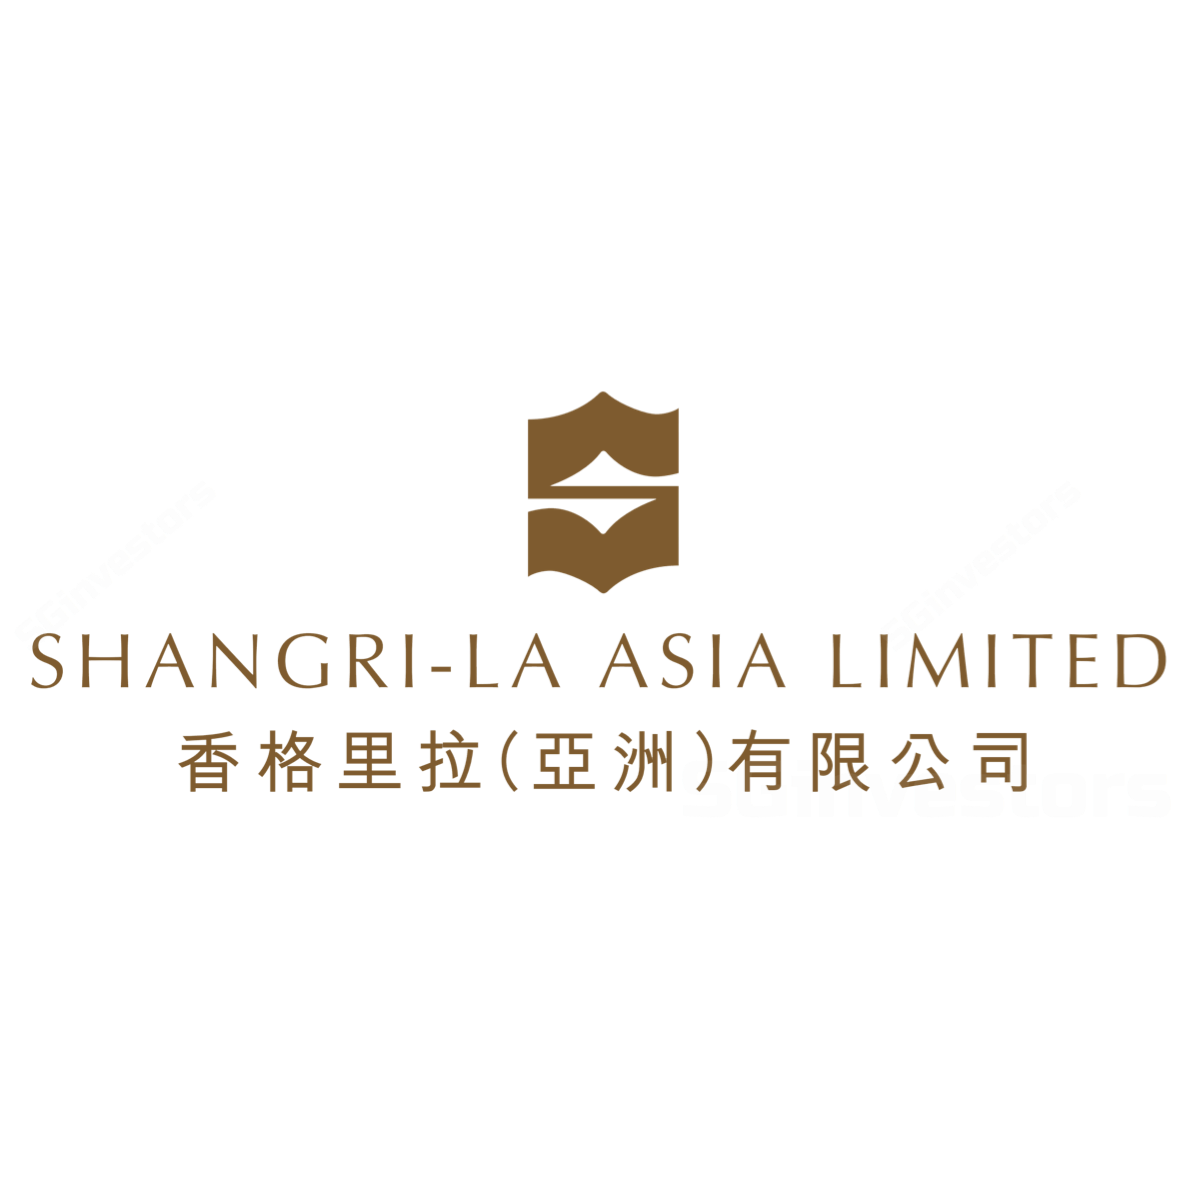 Shangri-La Asia - OCBC Investment Research 2018-08-27: Making Lux Affordable